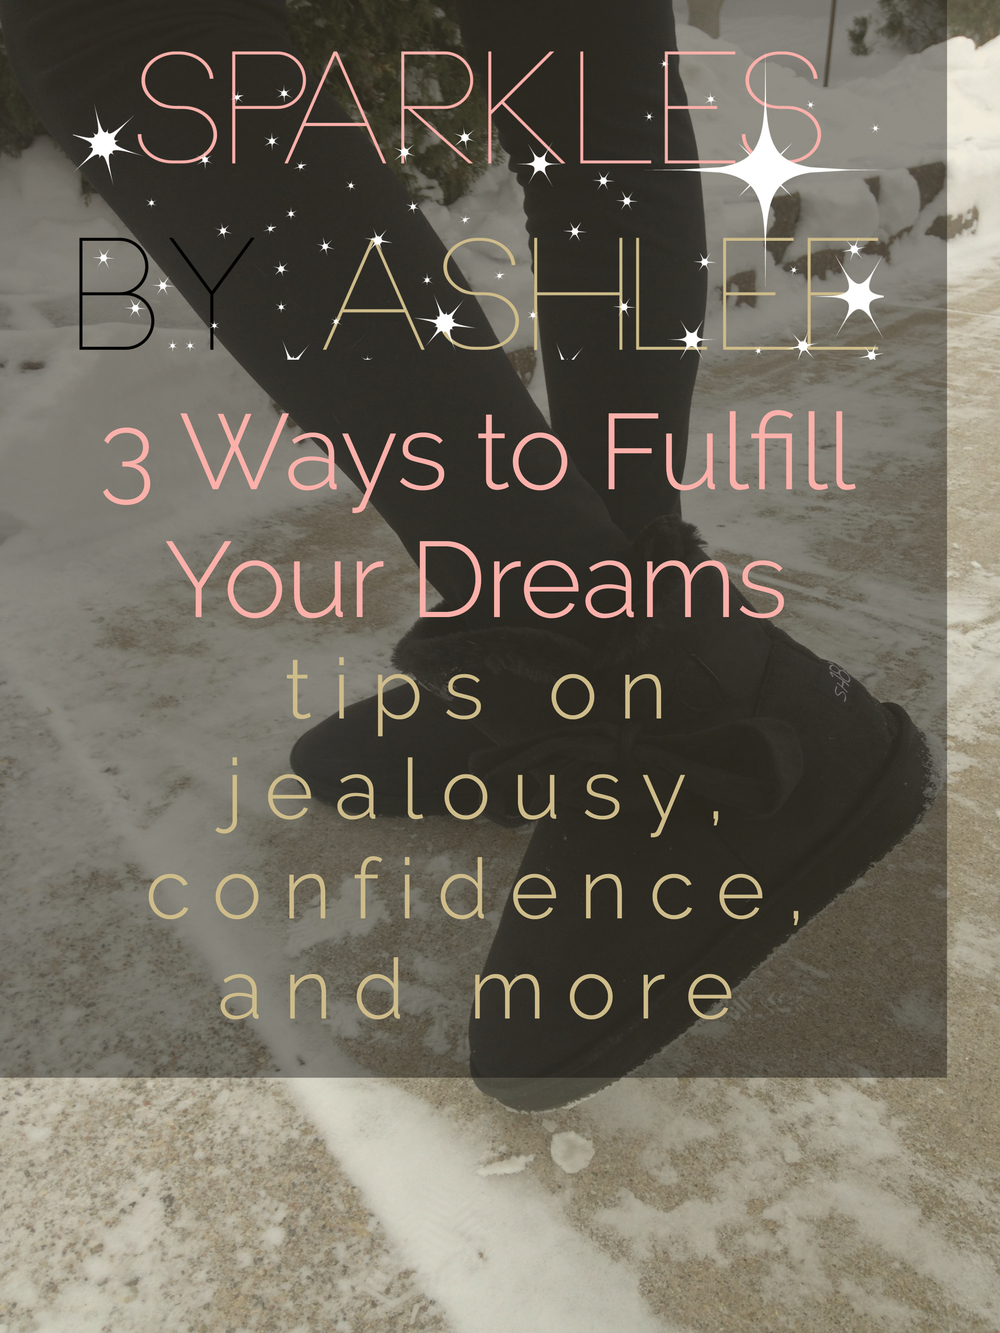 3-Ways-to-Fulfill-Your-Dreams-Sparkles-by-Ashlee.jpg